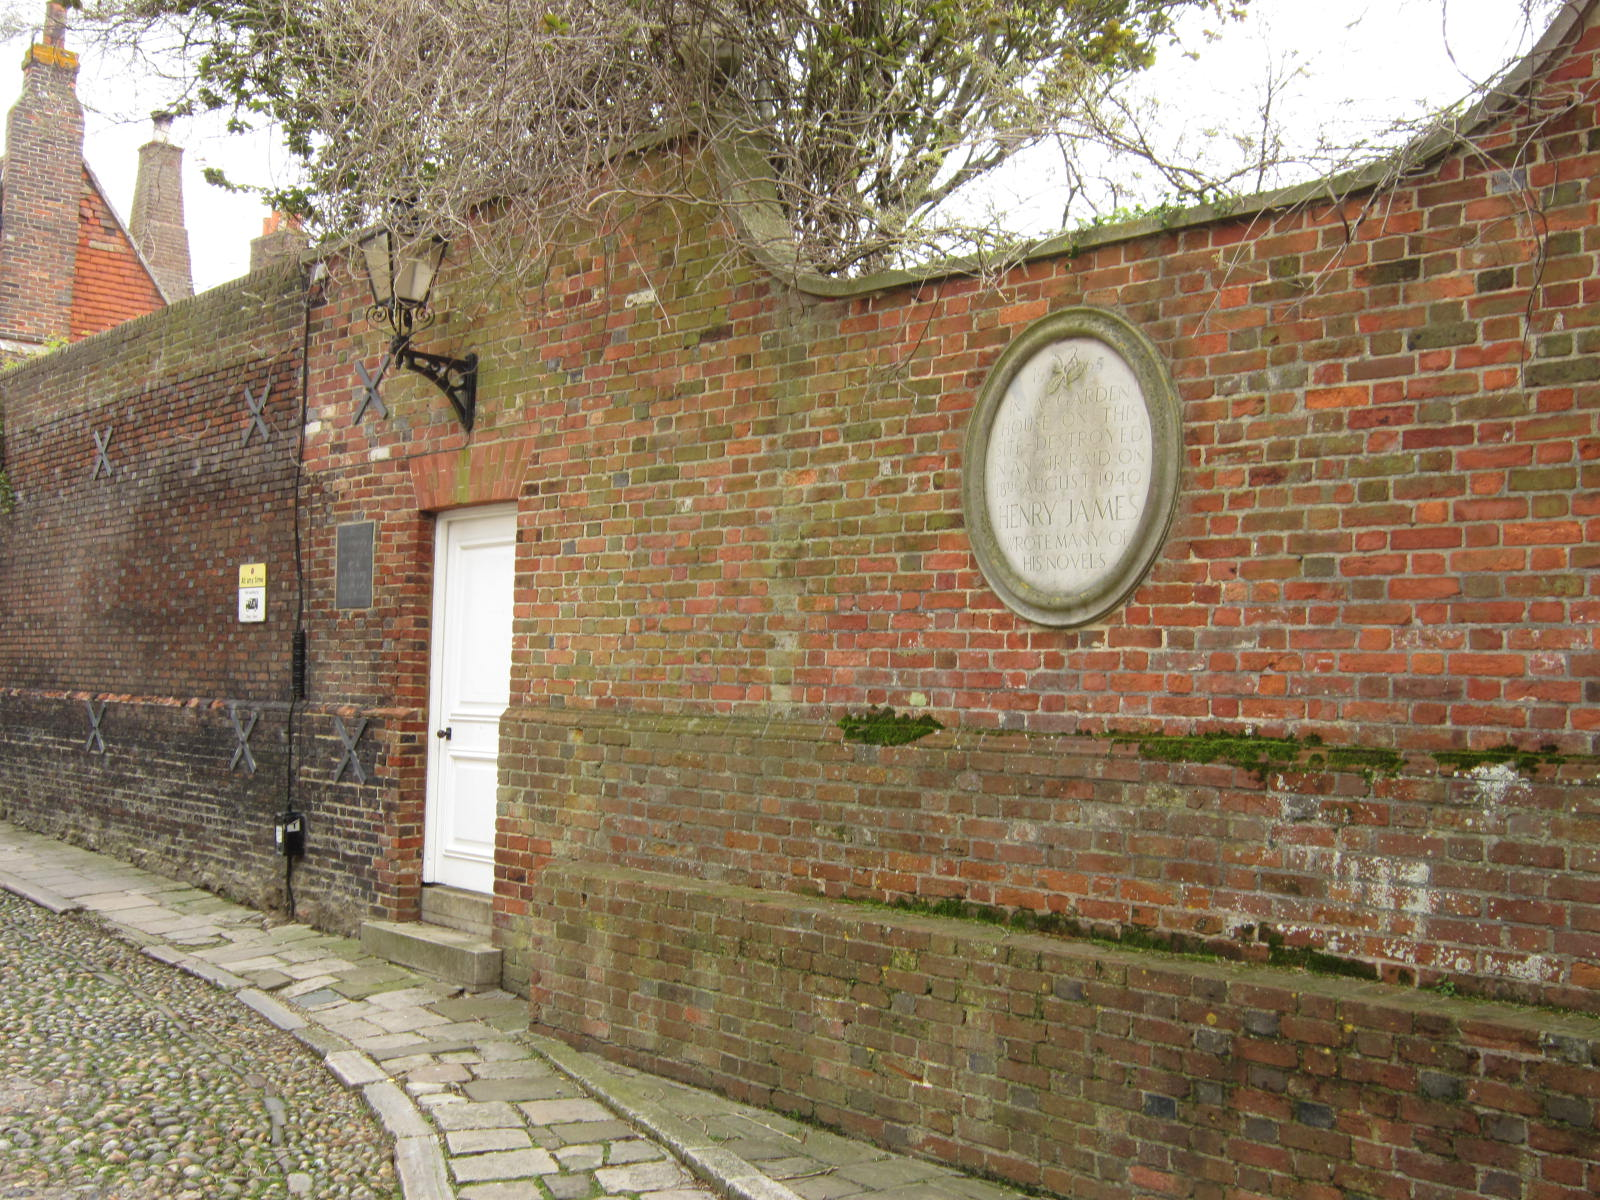 Daytrip to Rye: Lamb House and Henry James | a pile of leaves